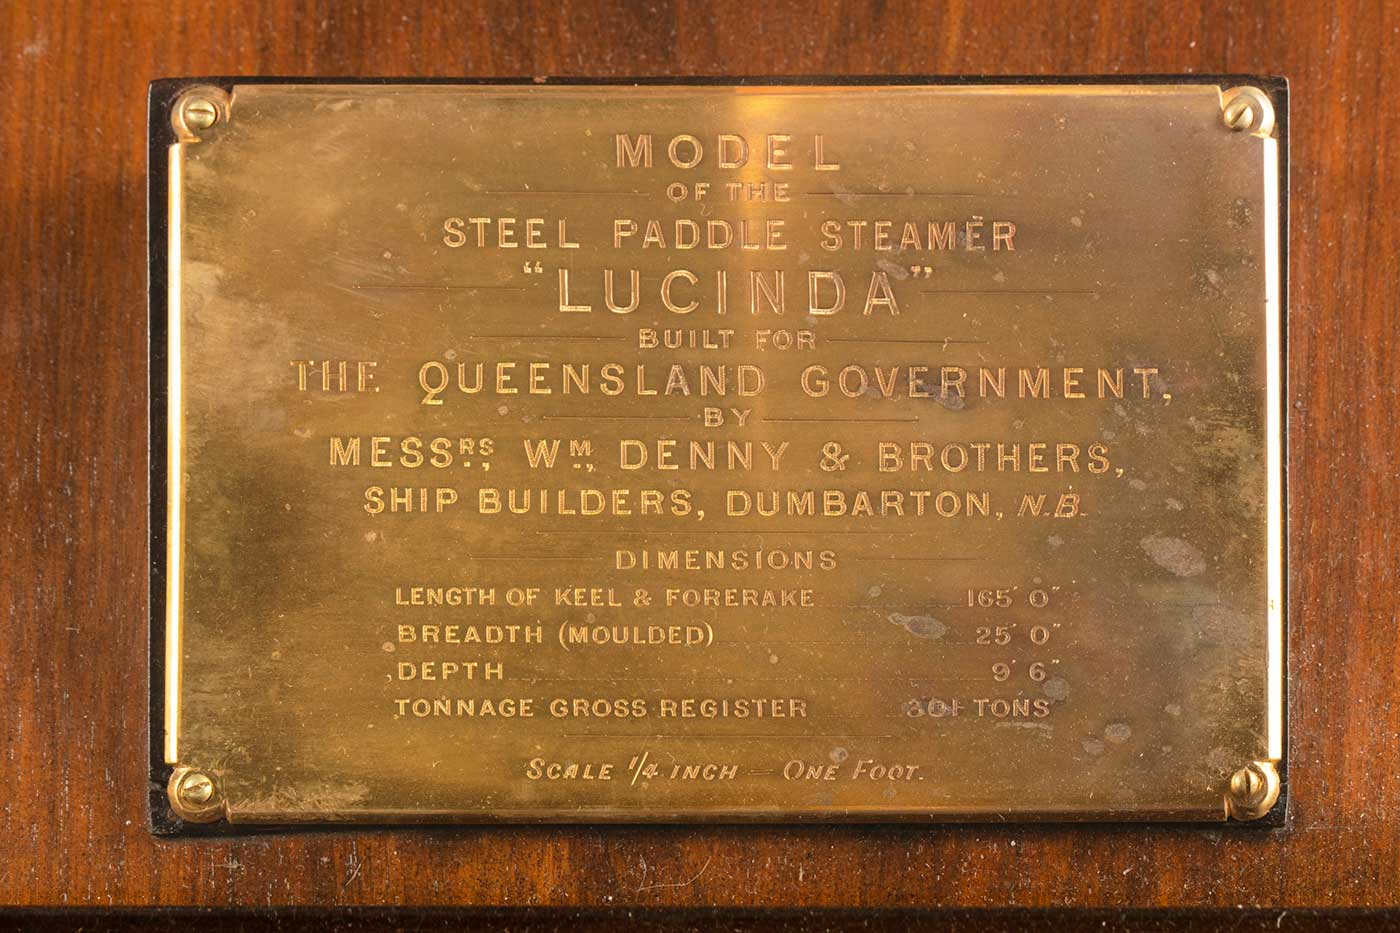 Plaque engraved with text including: